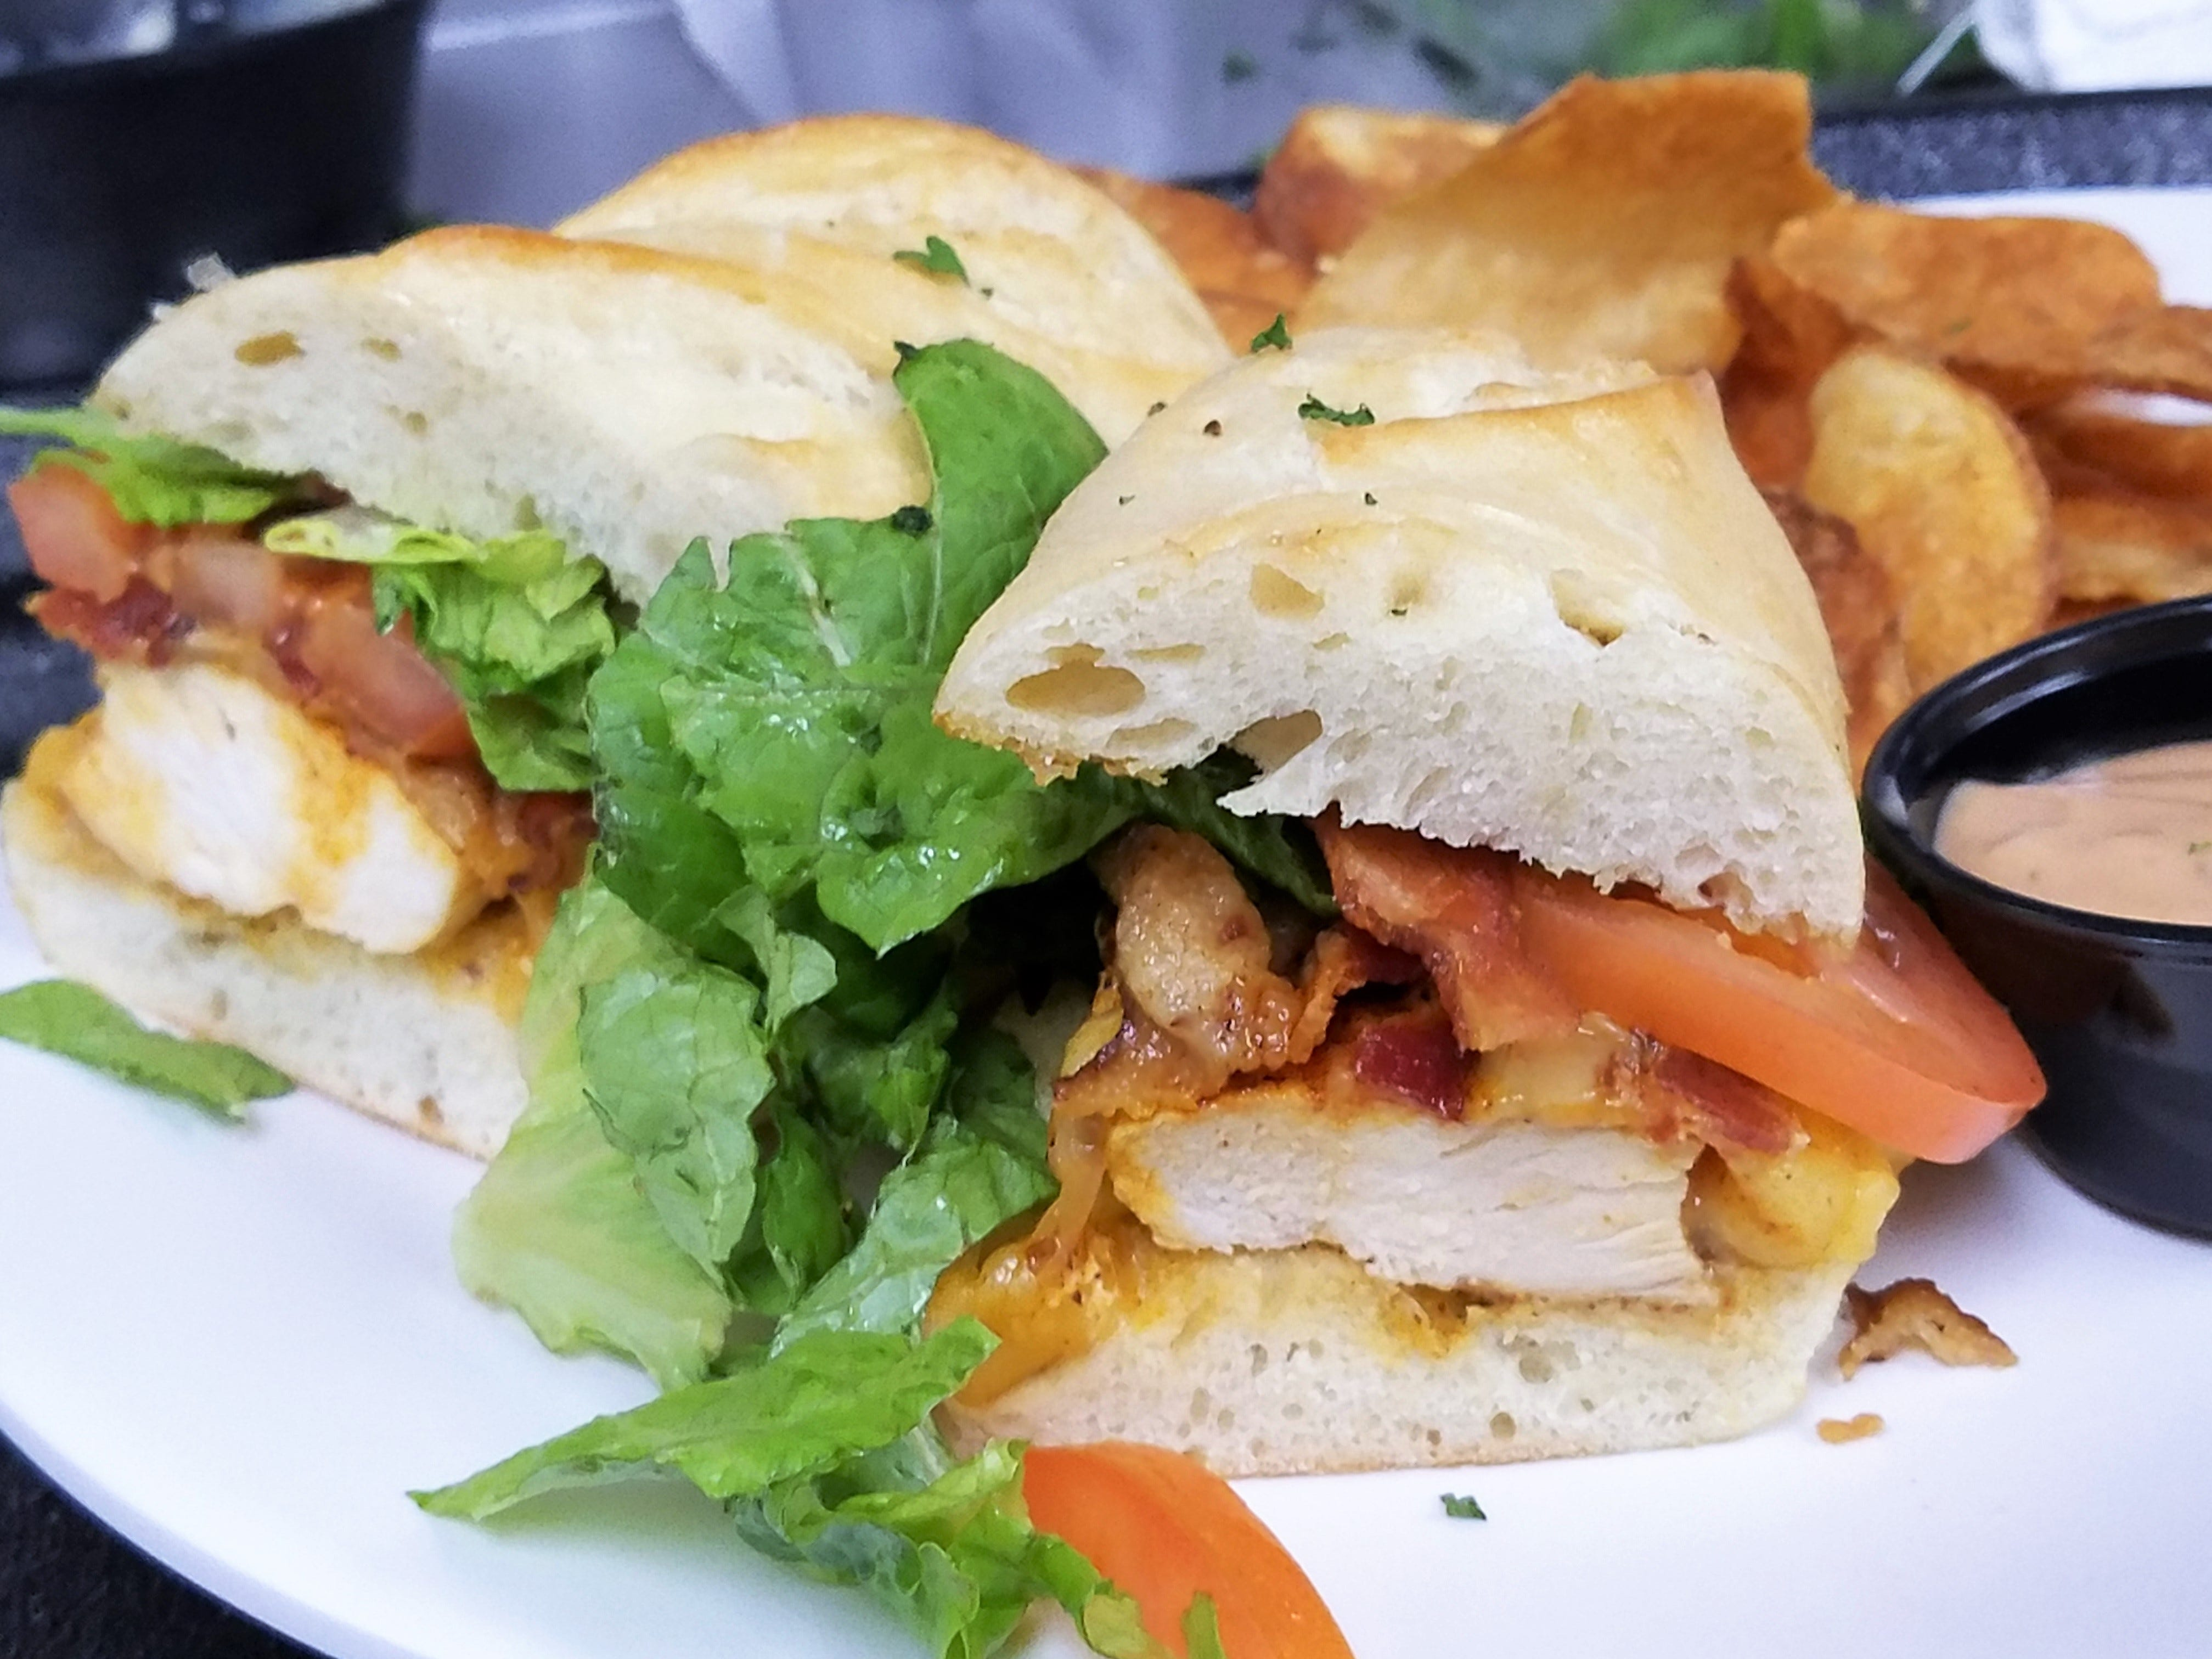 The Chicken sandwich with blackened chicken, bacon, smoked Gouda cheese, tomato and romaine at Prime Time Pub & Grill.